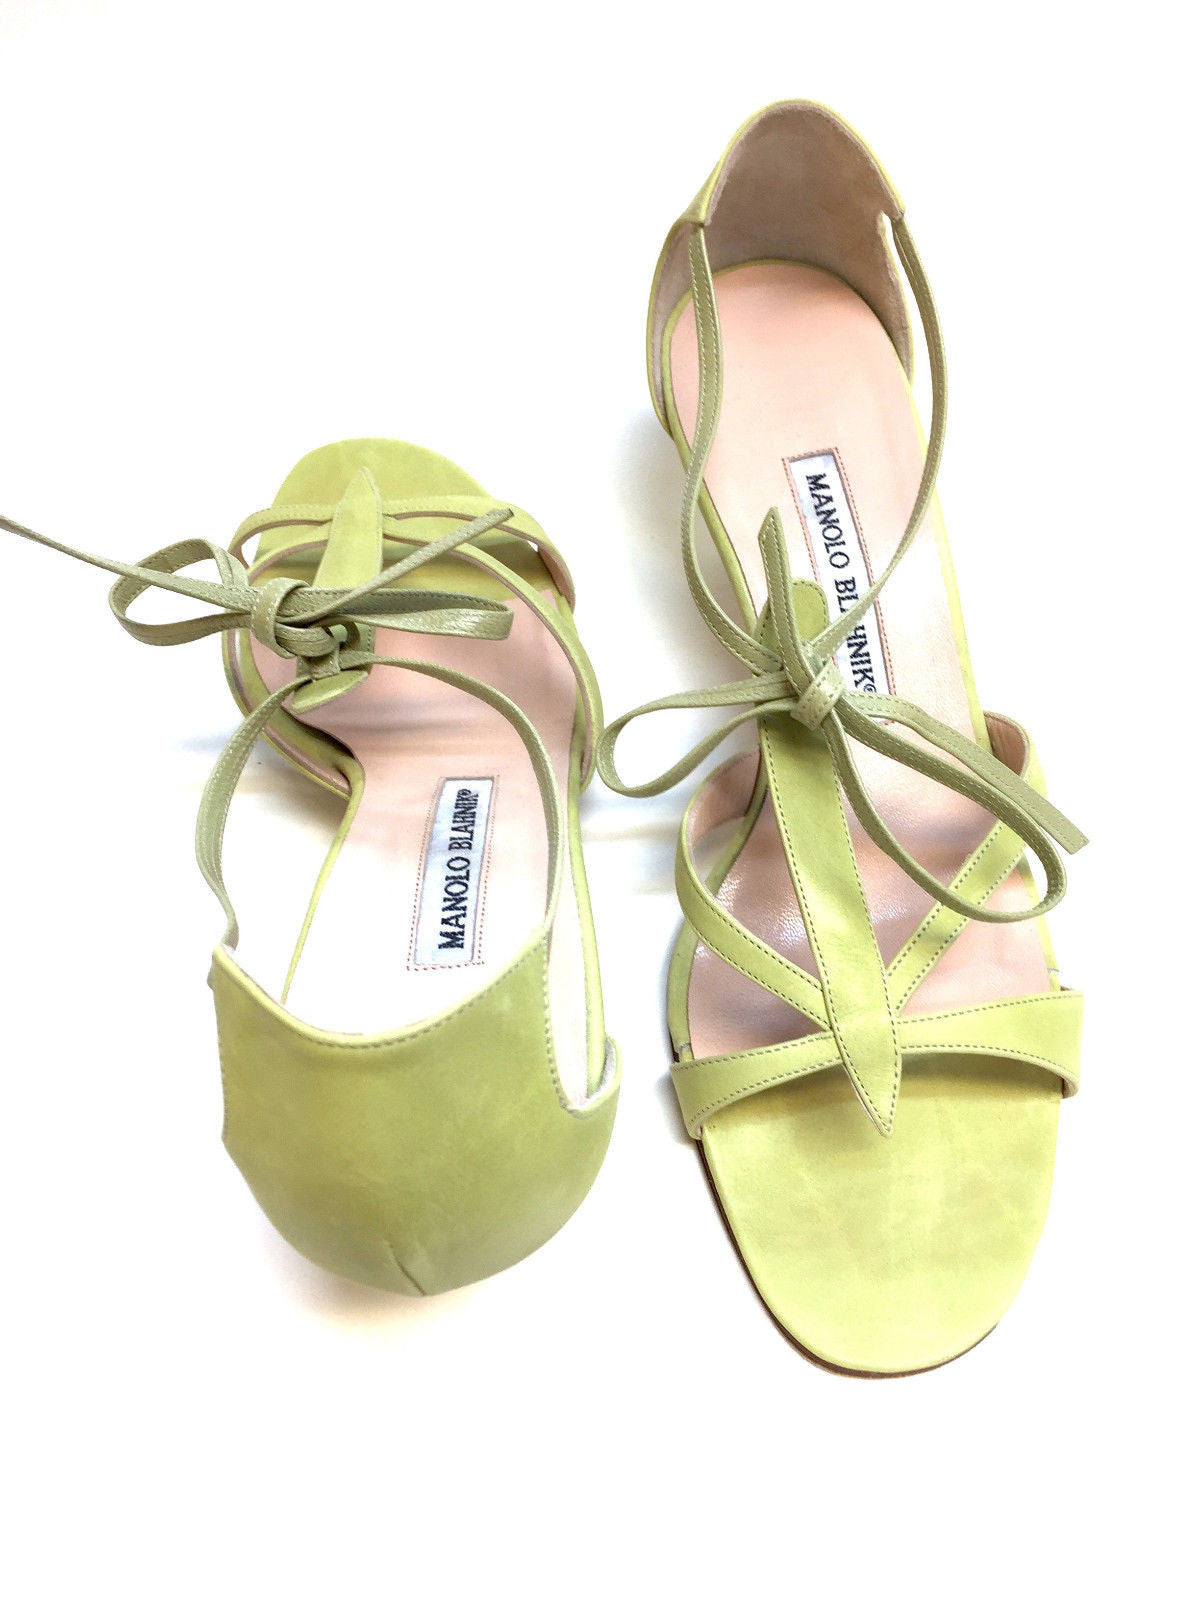 ae1f4e5052 ... bisbiz.com MANOLO BLAHNIK Lime-Green Leather Open-Toe T-Strap Kitten ...